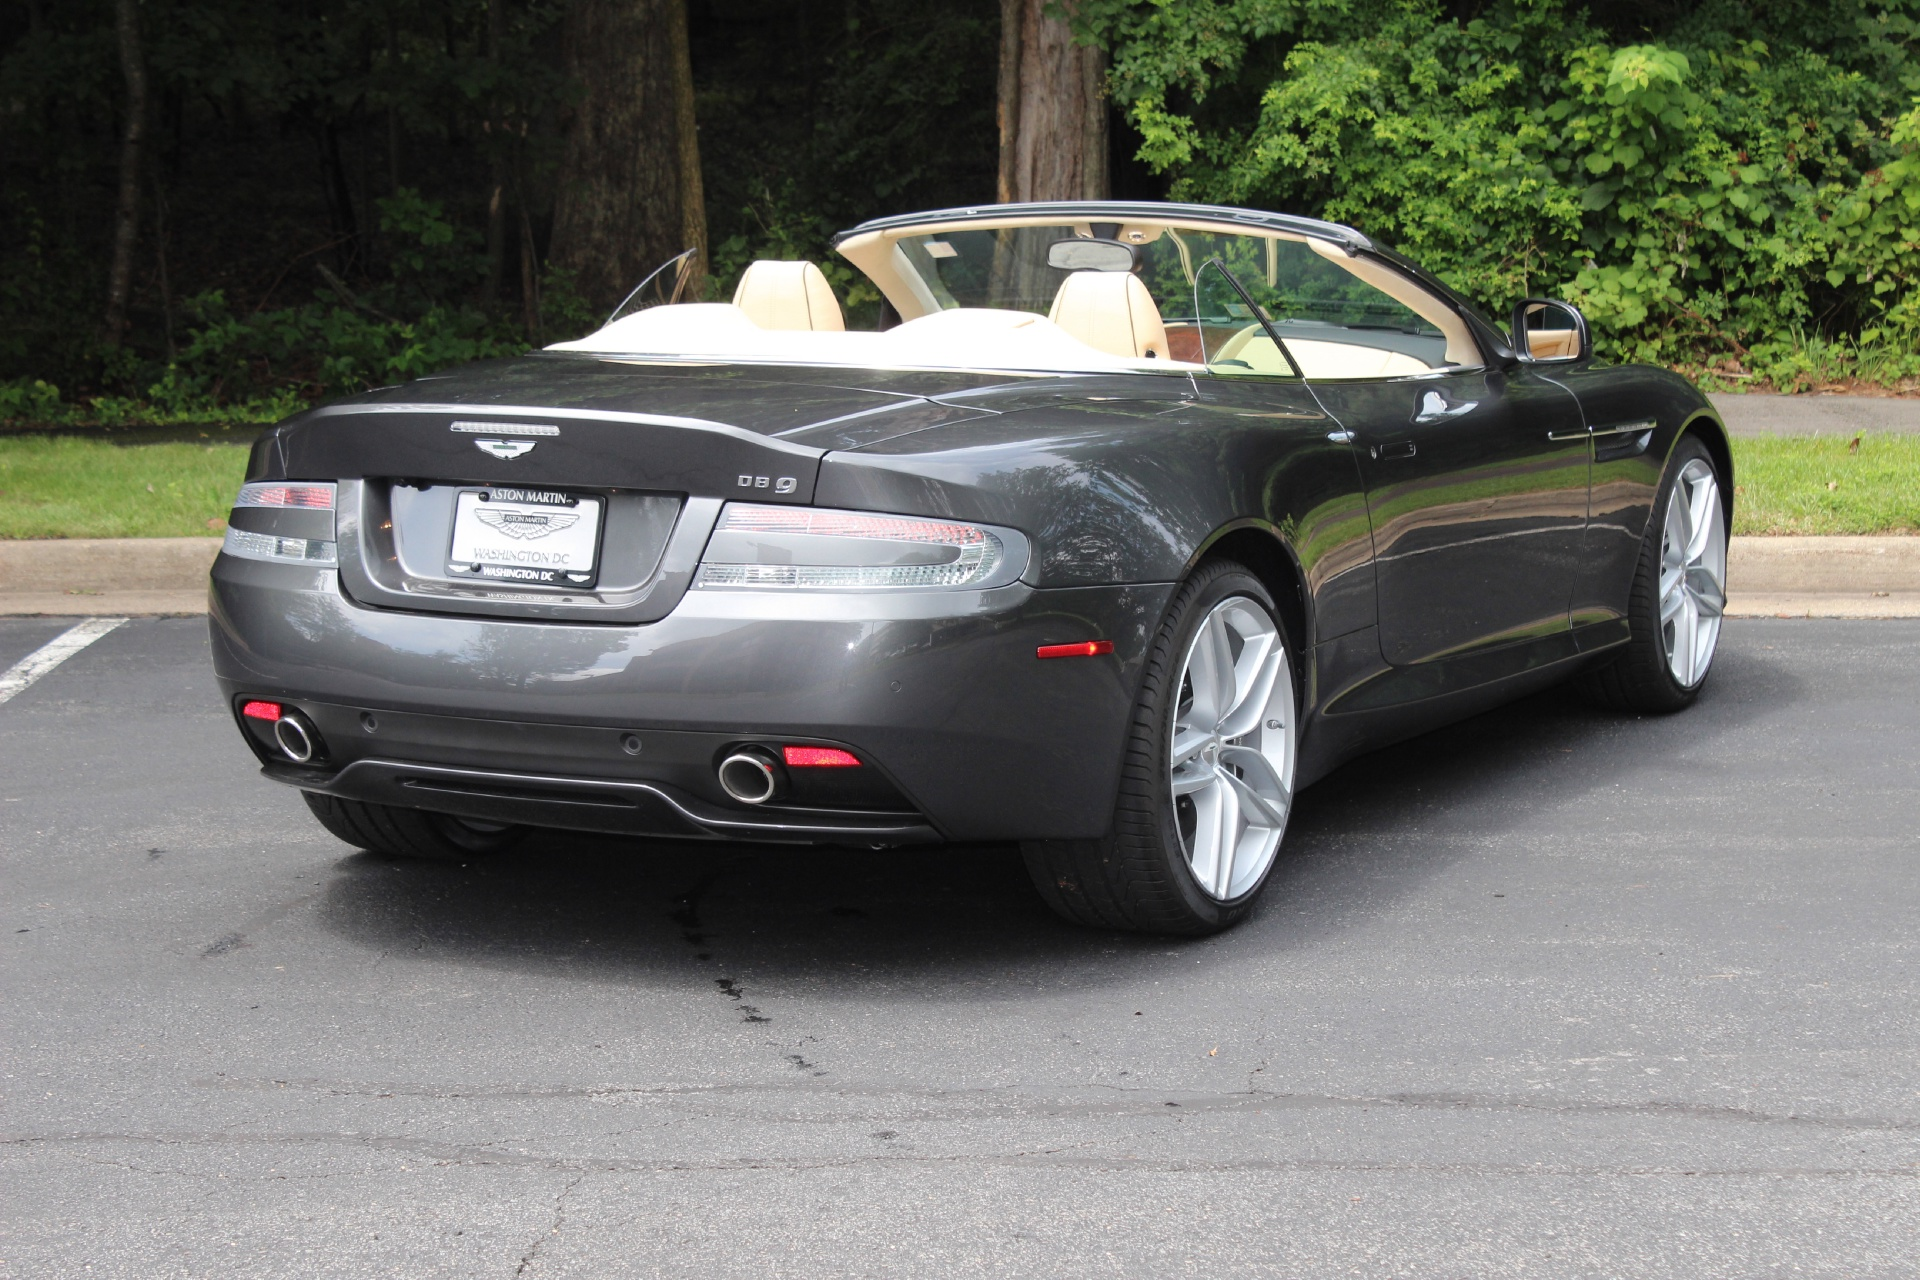 2015 aston martin db9 volante stock 5b16587 for sale near vienna va va aston martin dealer. Black Bedroom Furniture Sets. Home Design Ideas